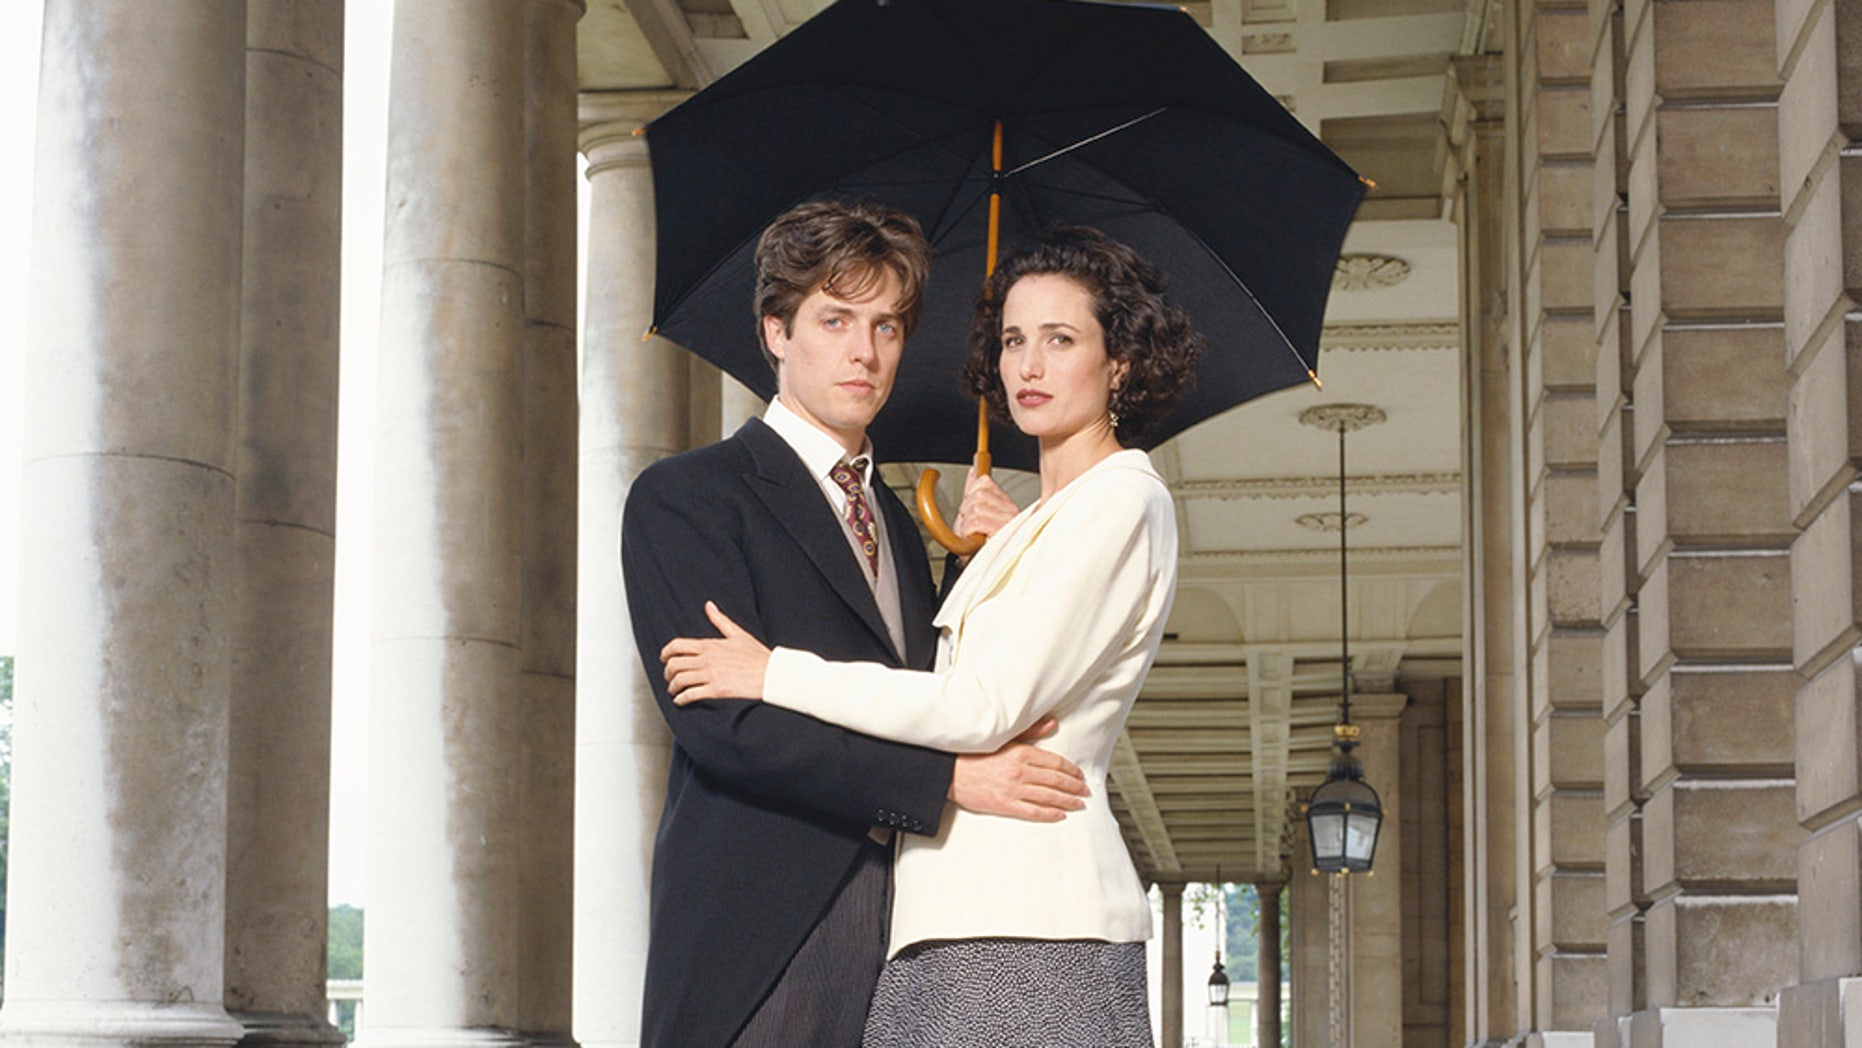 """Actor Hugh Grant and actress Andie MacDowell posing as their characters from Richard Curtis' 1994 comedy 'Four Weddings And A Funeral."""""""